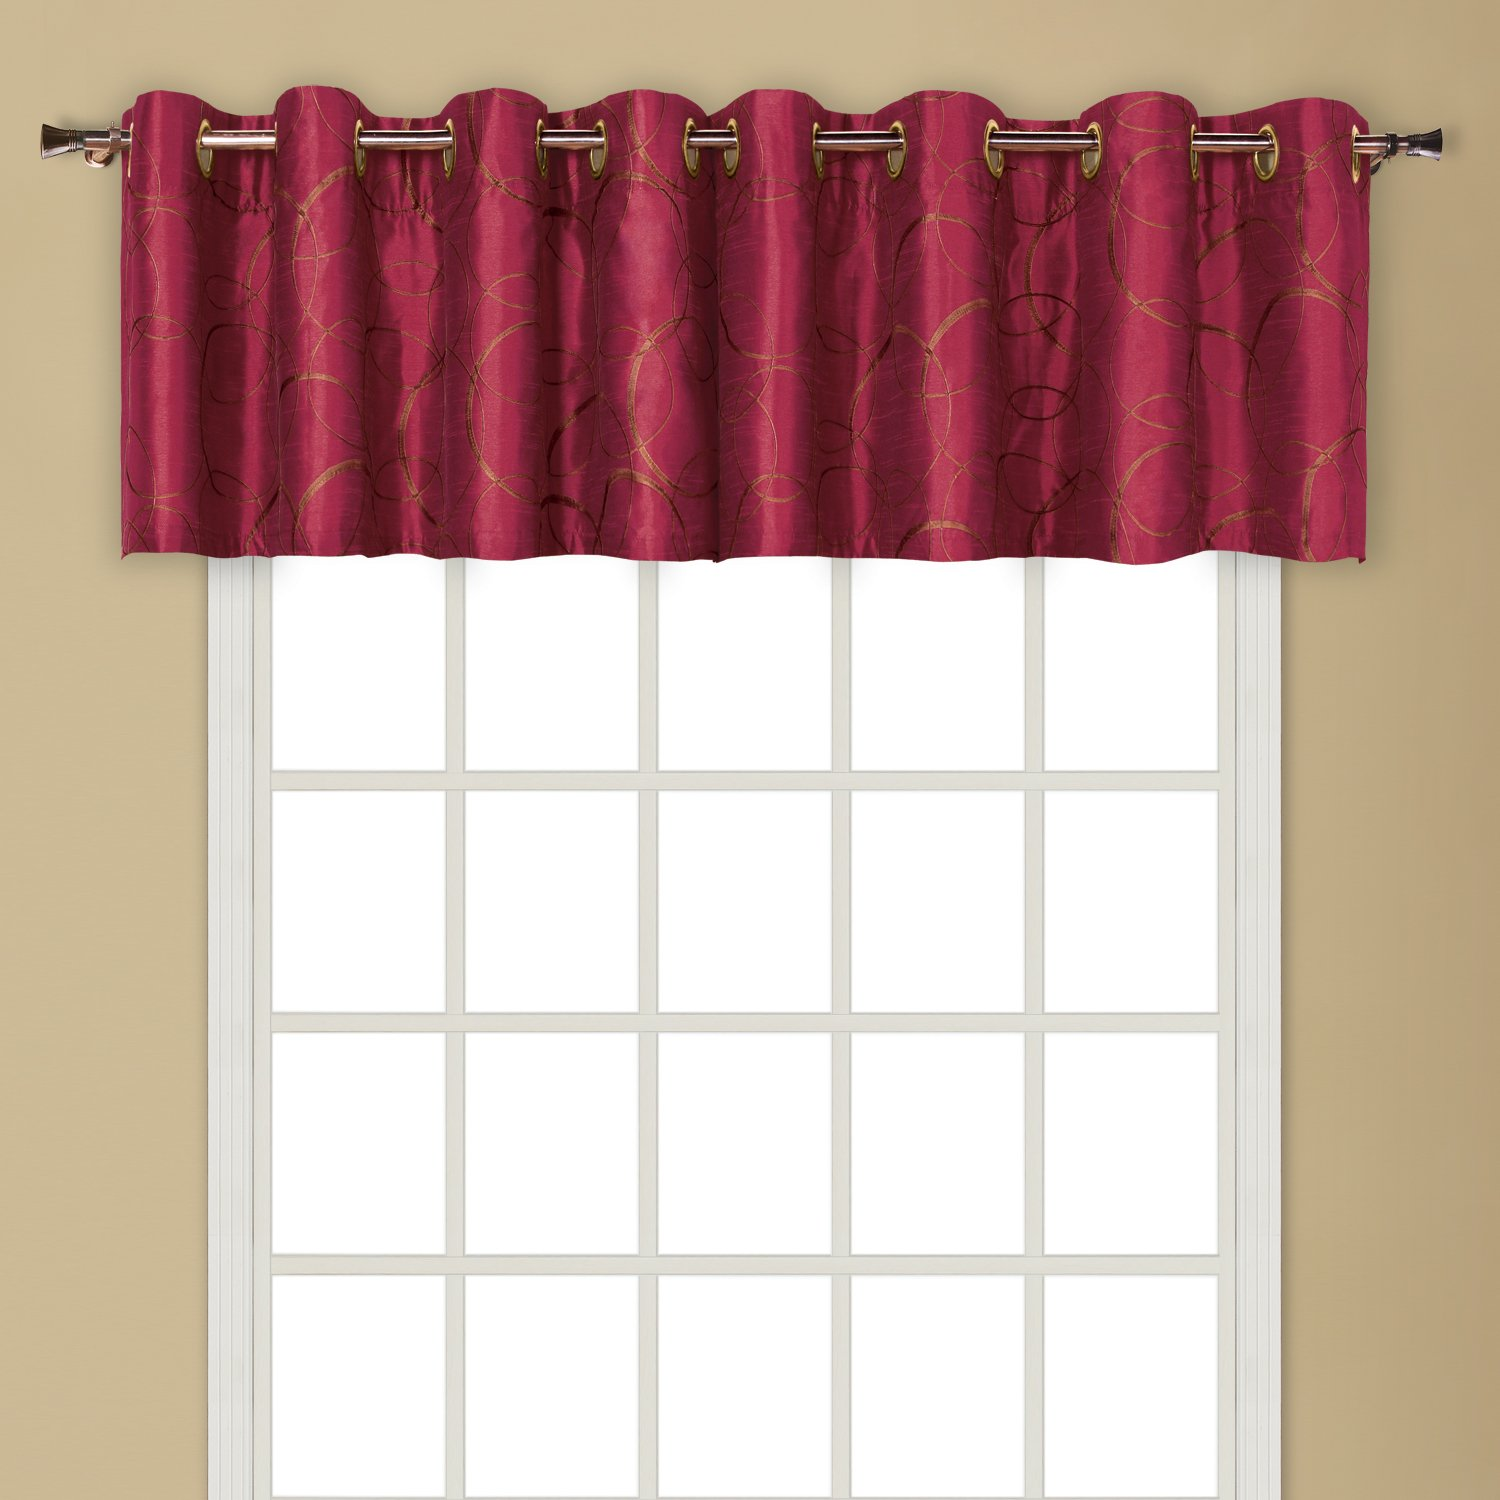 l bronze tension curtain curtains spring p oil collection rods in decorators rod sets home rubbed